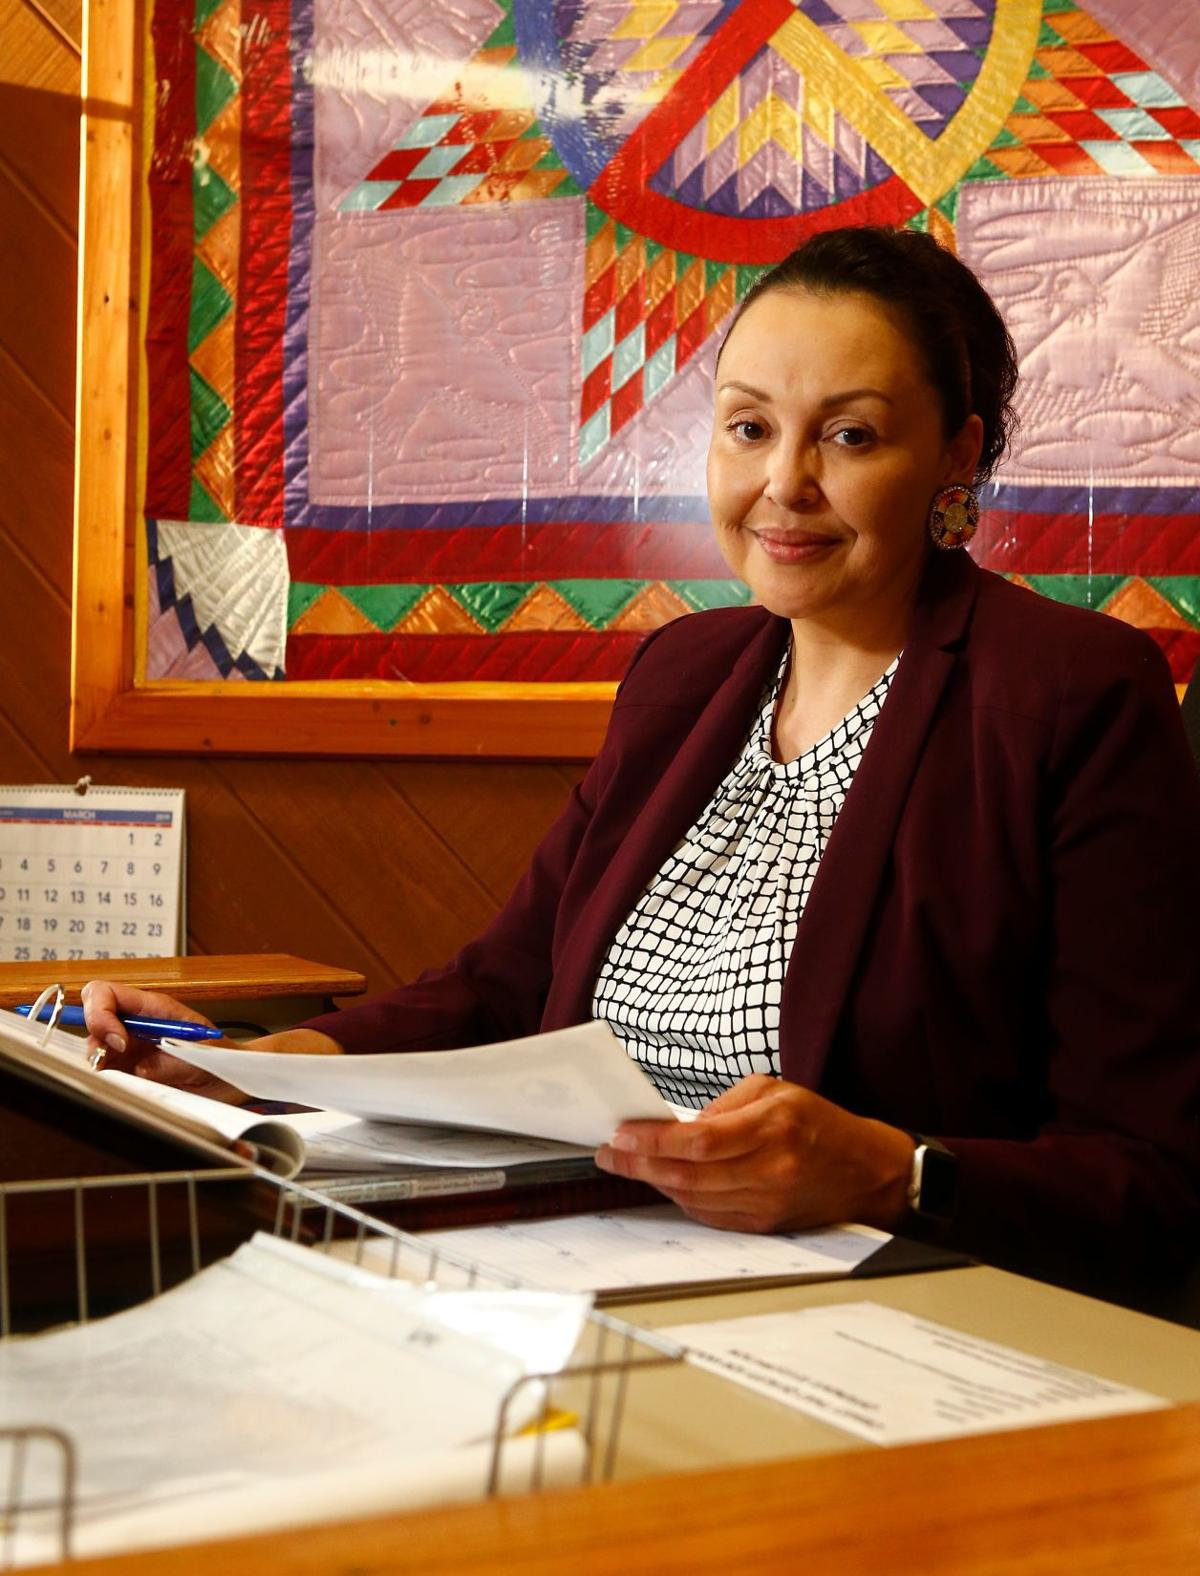 Fort Peck Assiniboine and Sioux Tribes Chief Judge Stacie Smith